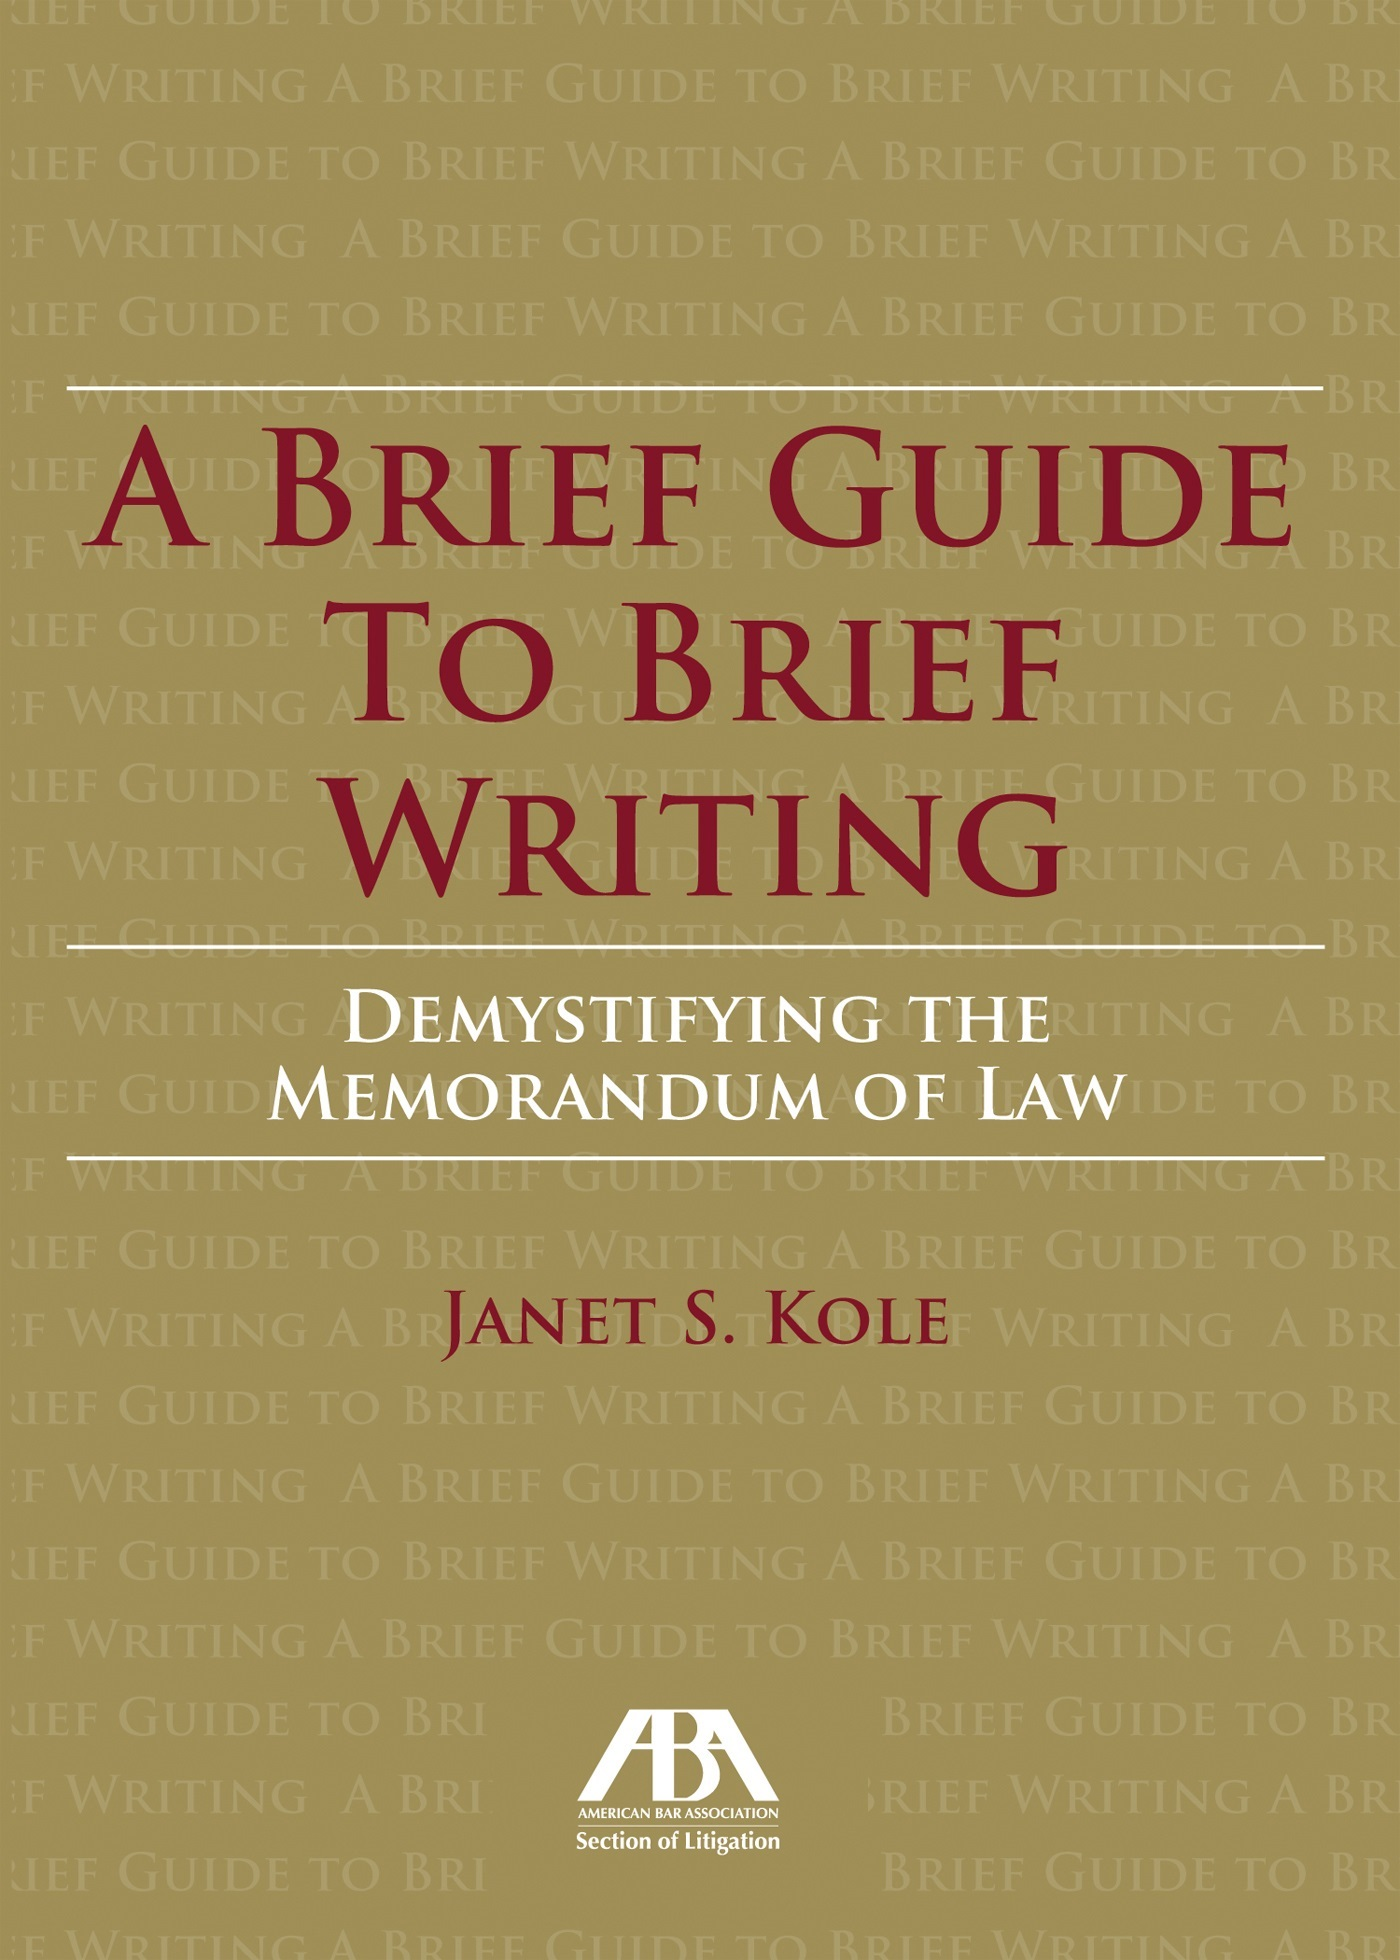 A Brief Guide to Brief Writing Demystifying the Memorandum of the Law